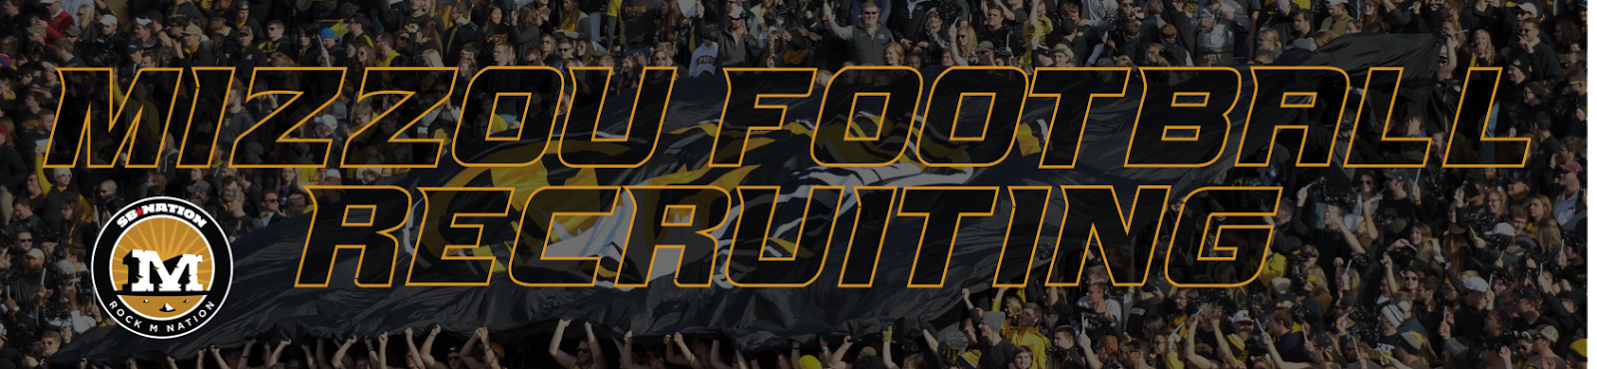 Mizzou_fb_recruiting.0.0